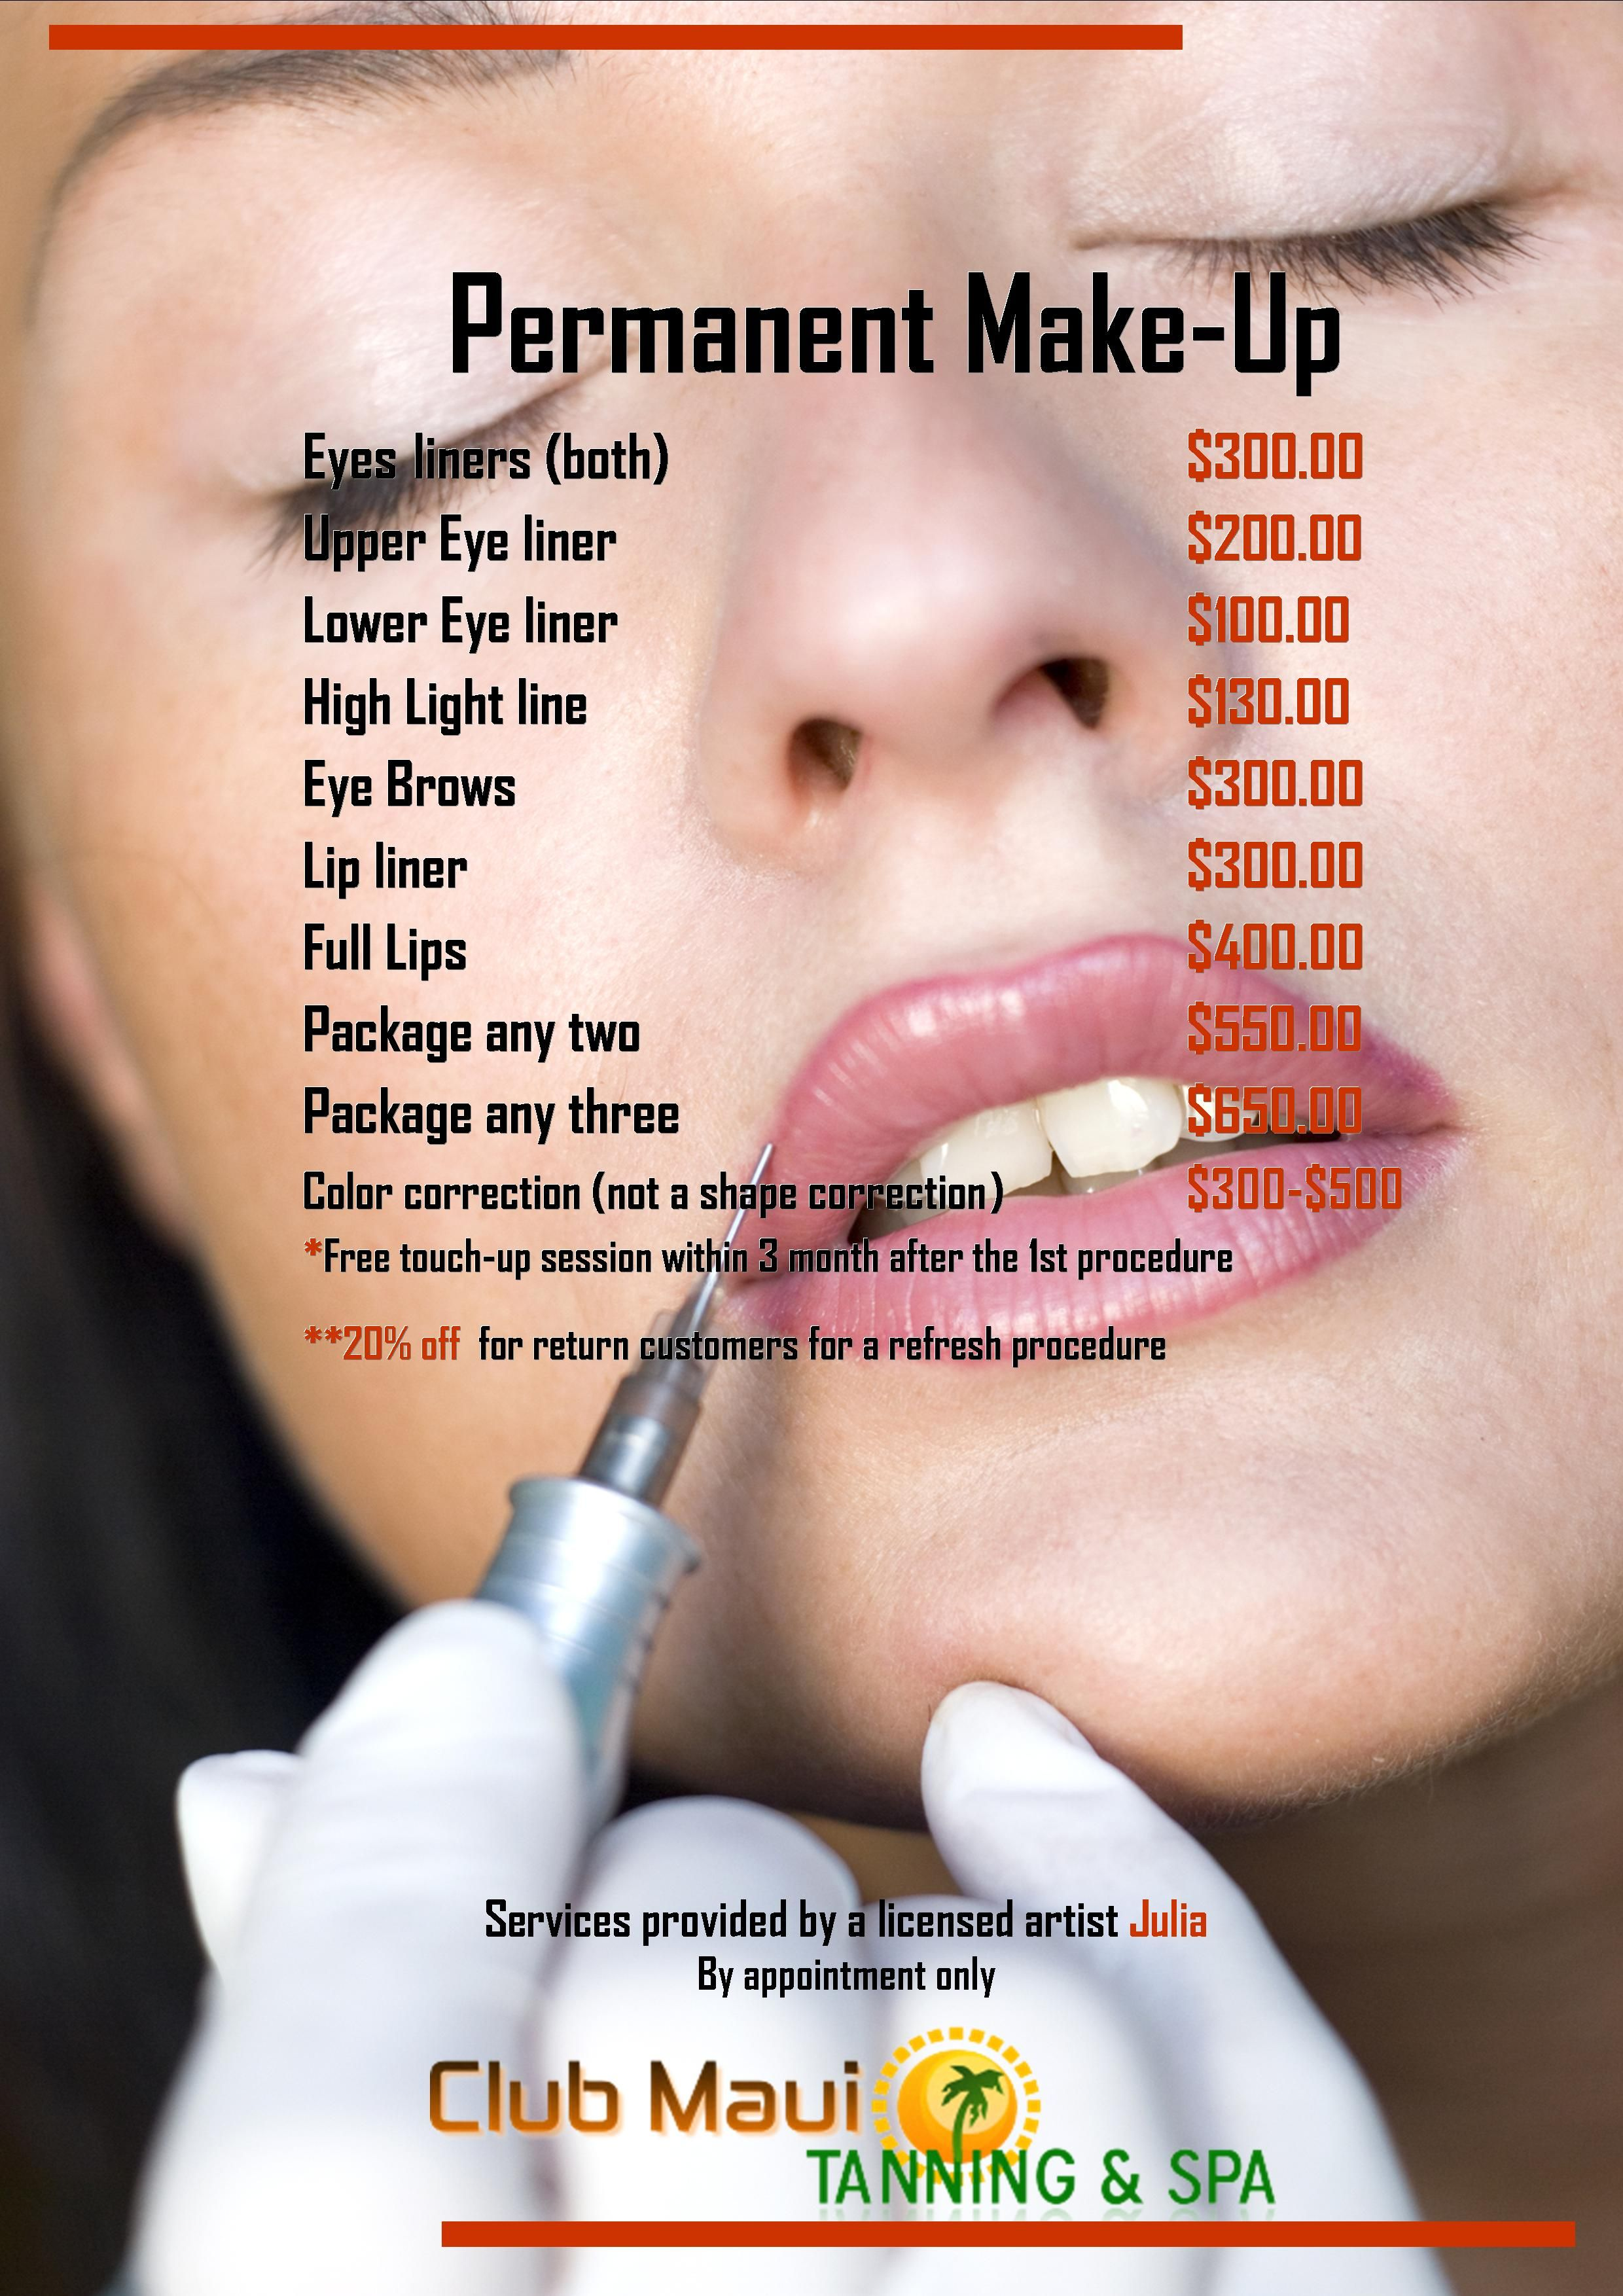 Club Maui Tanning Spa Permanent Makeup price list